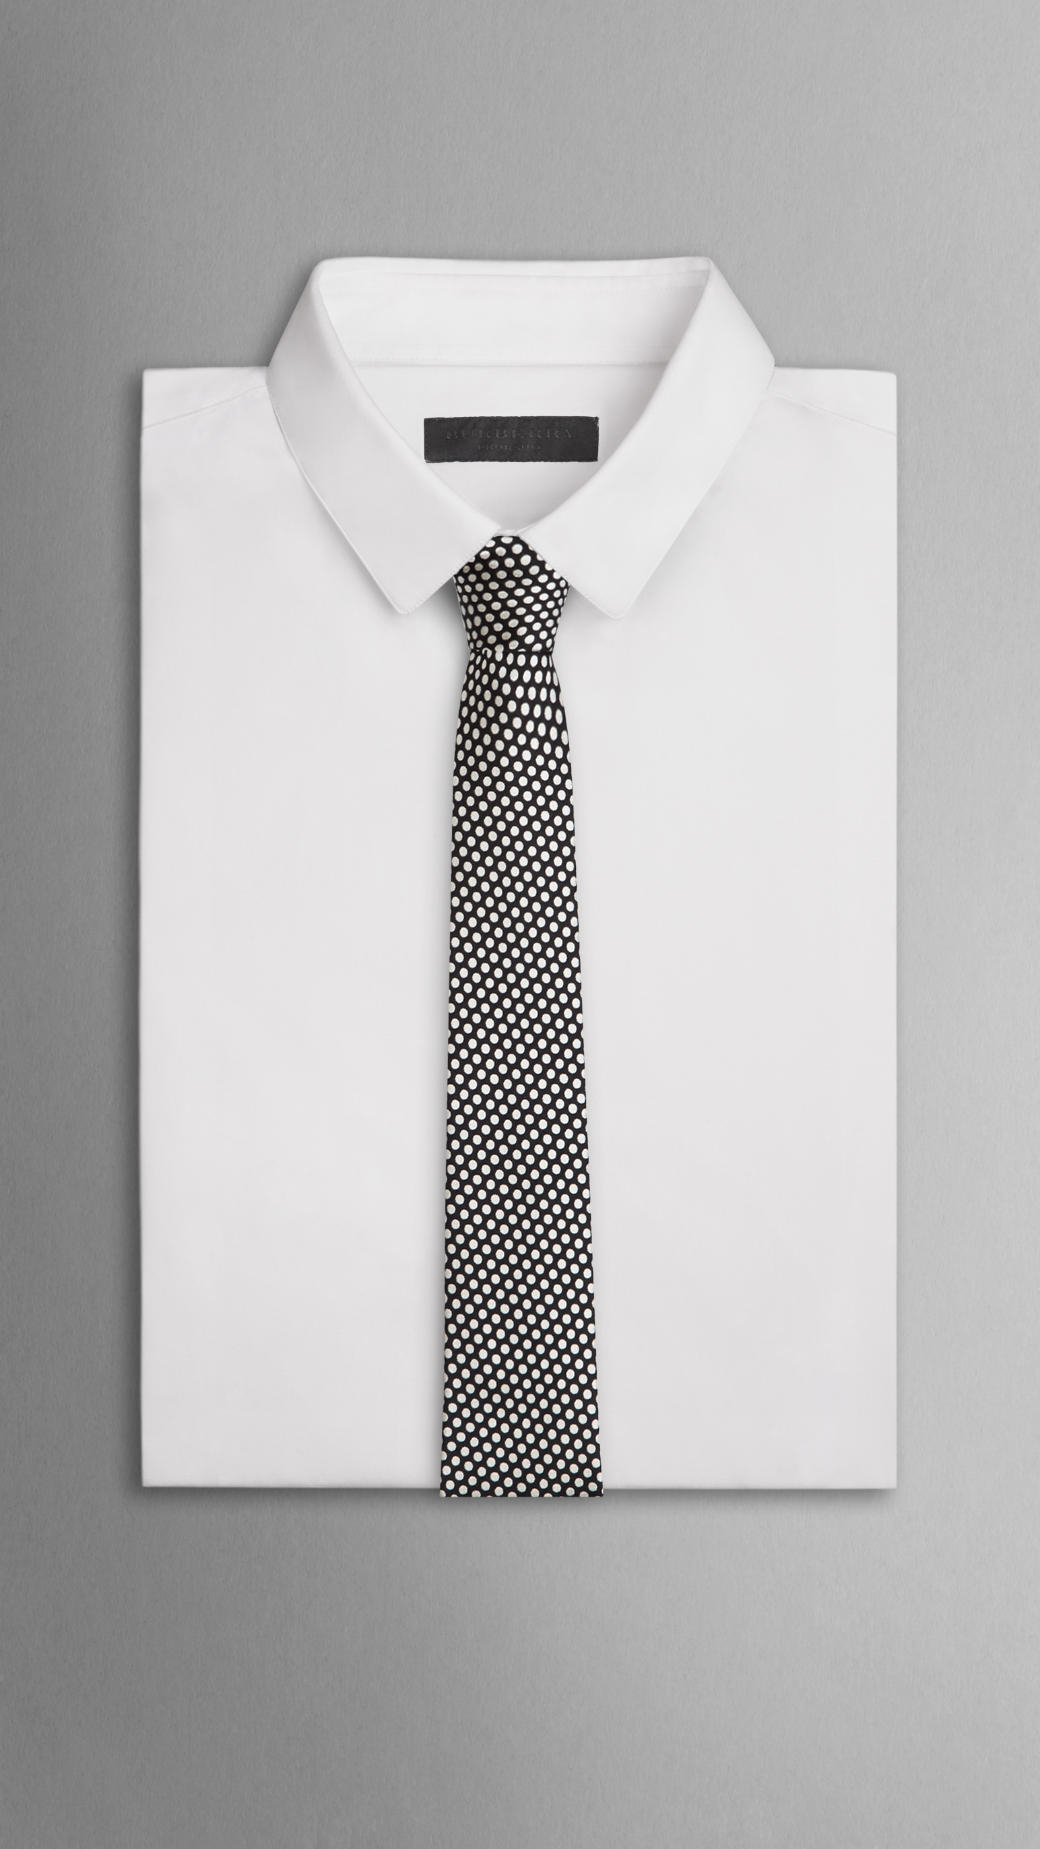 203e929f1 ... order lyst burberry dotted silk jacquard skinny tie in black for men  c9924 ec0ae